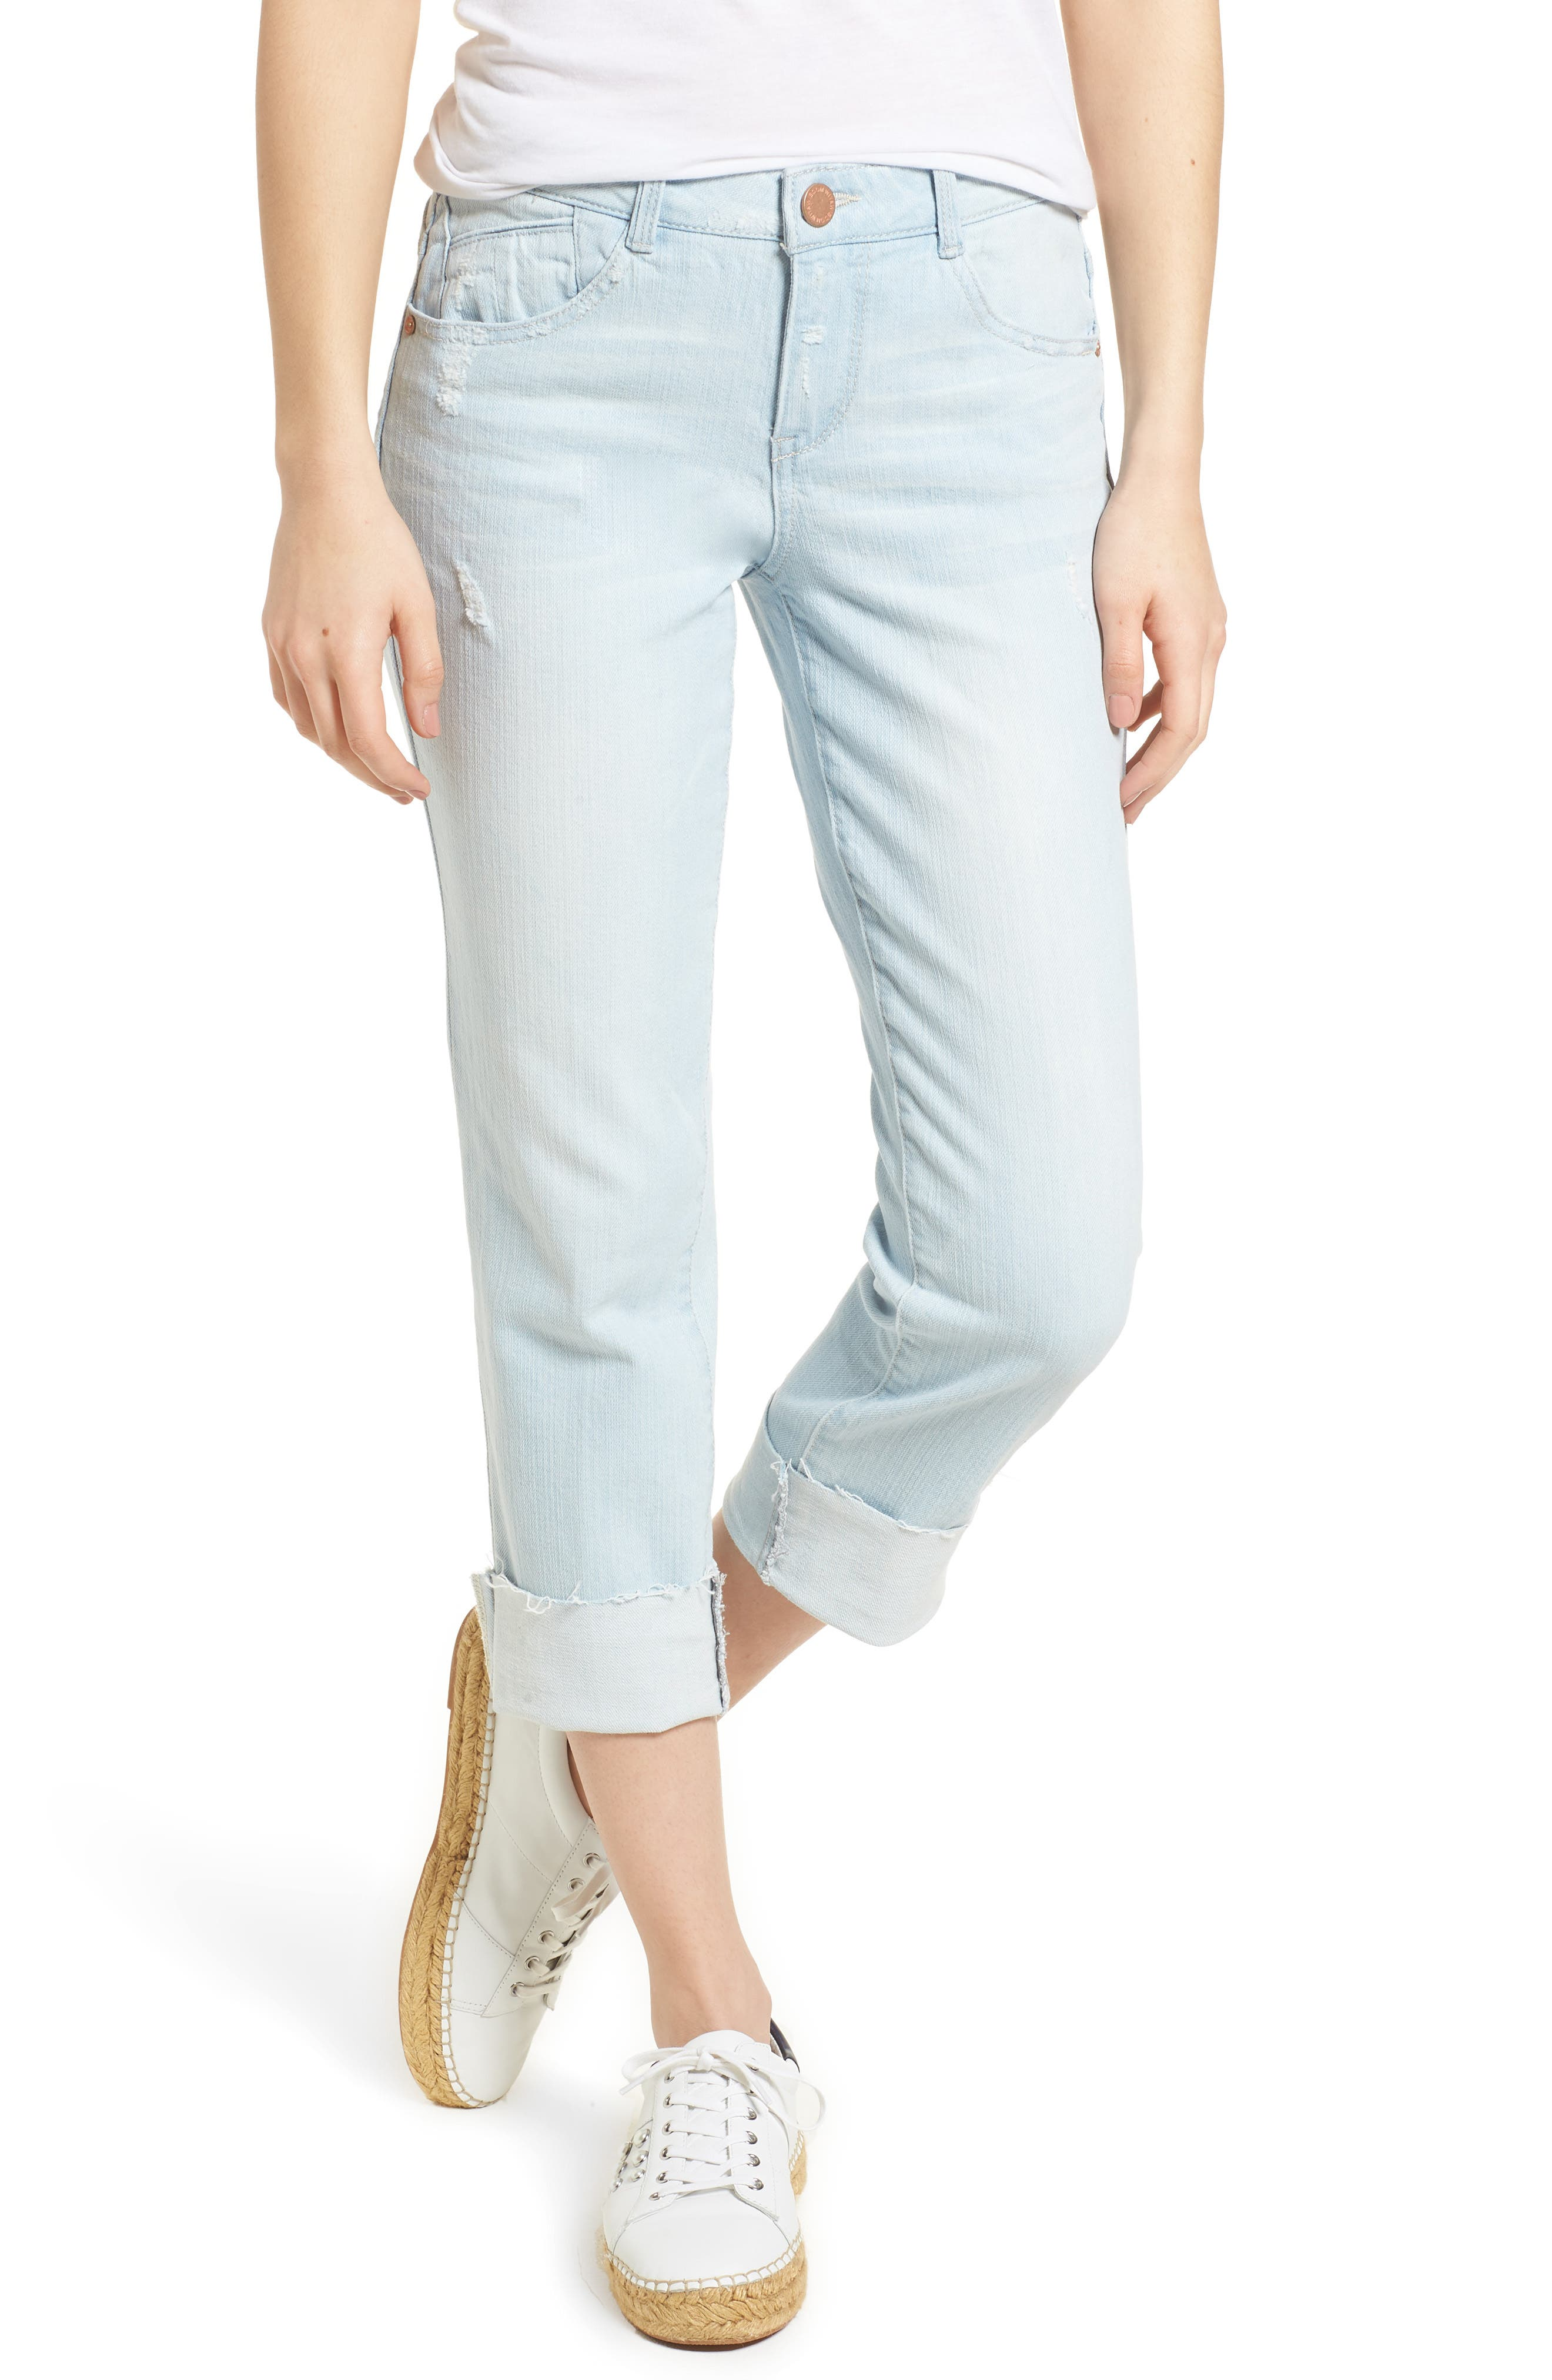 Wit & Wisdom Flex-ellent Distressed Boyfriend Jeans (Nordstrom Exclusive)